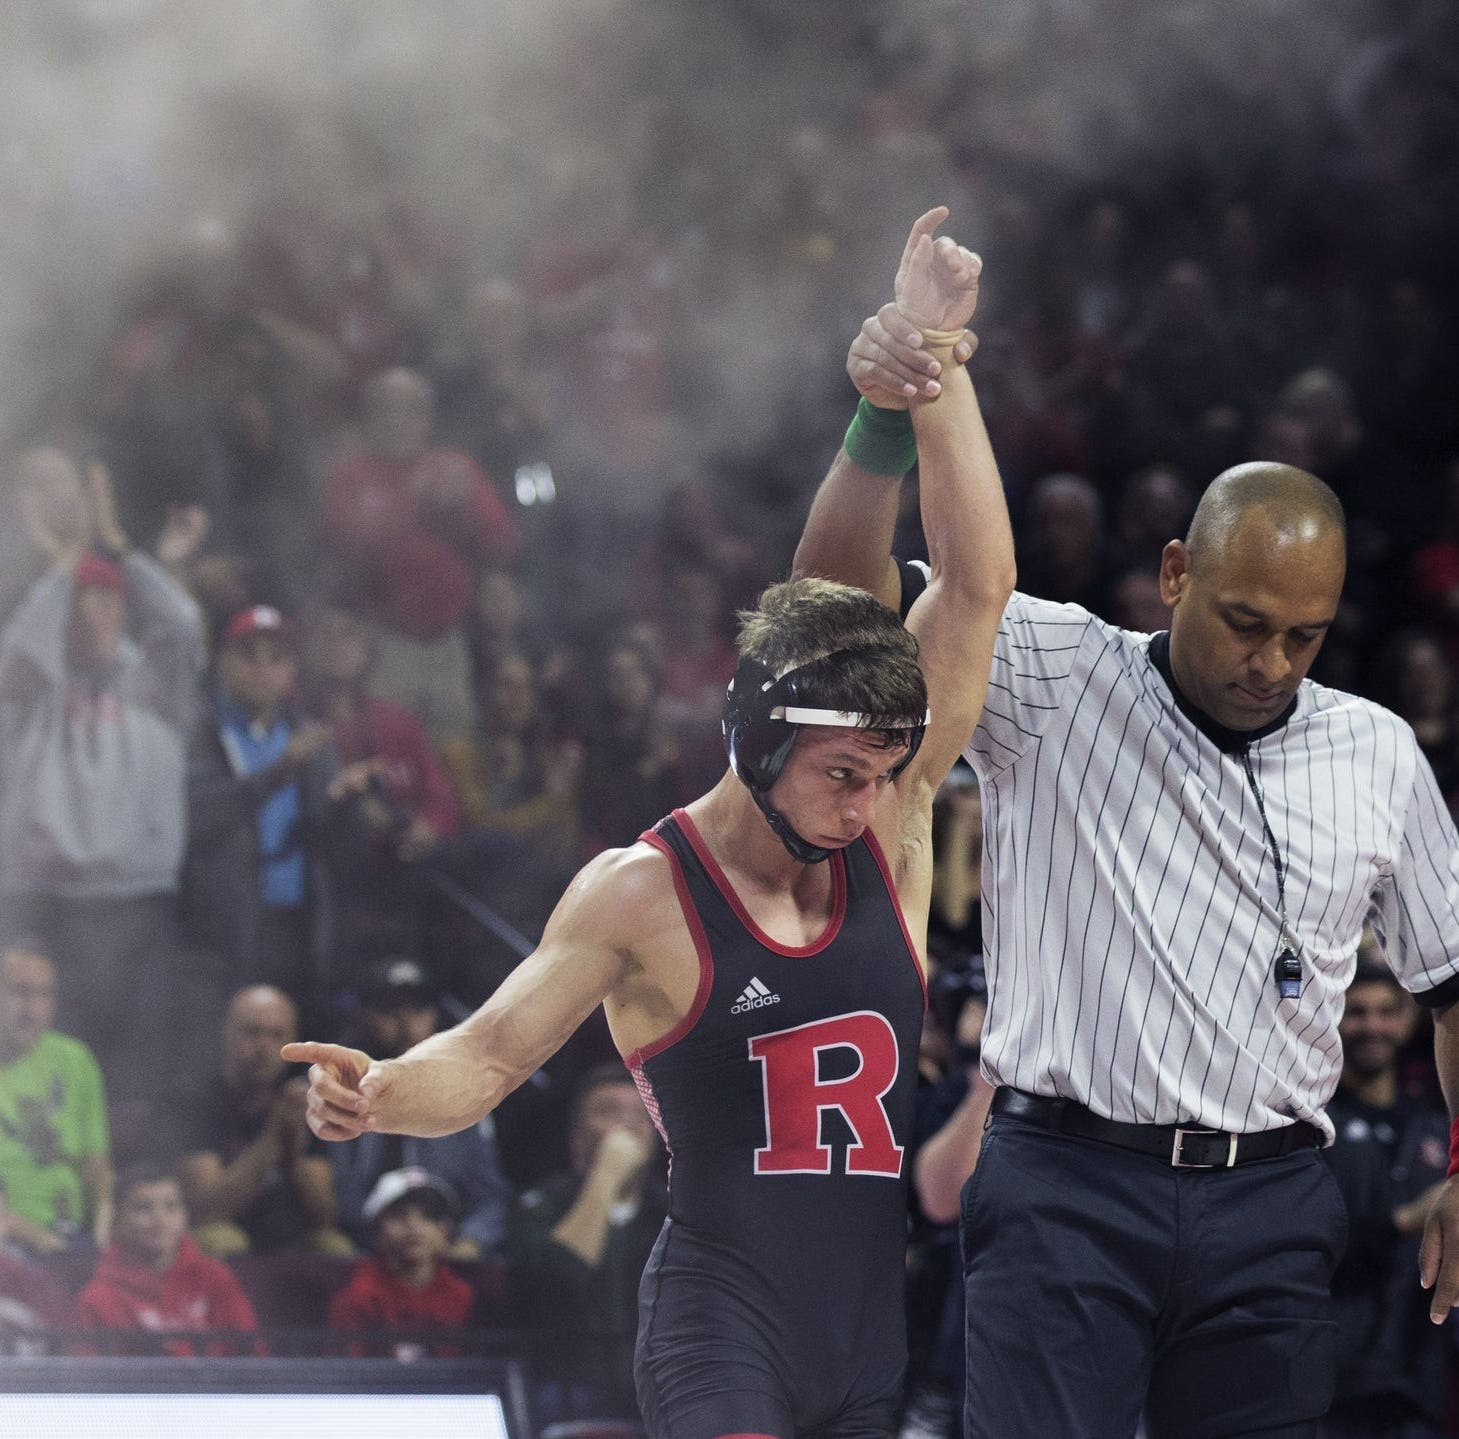 College wrestling: Nick Suriano, Anthony Ashnault of Rutgers ranked in top three